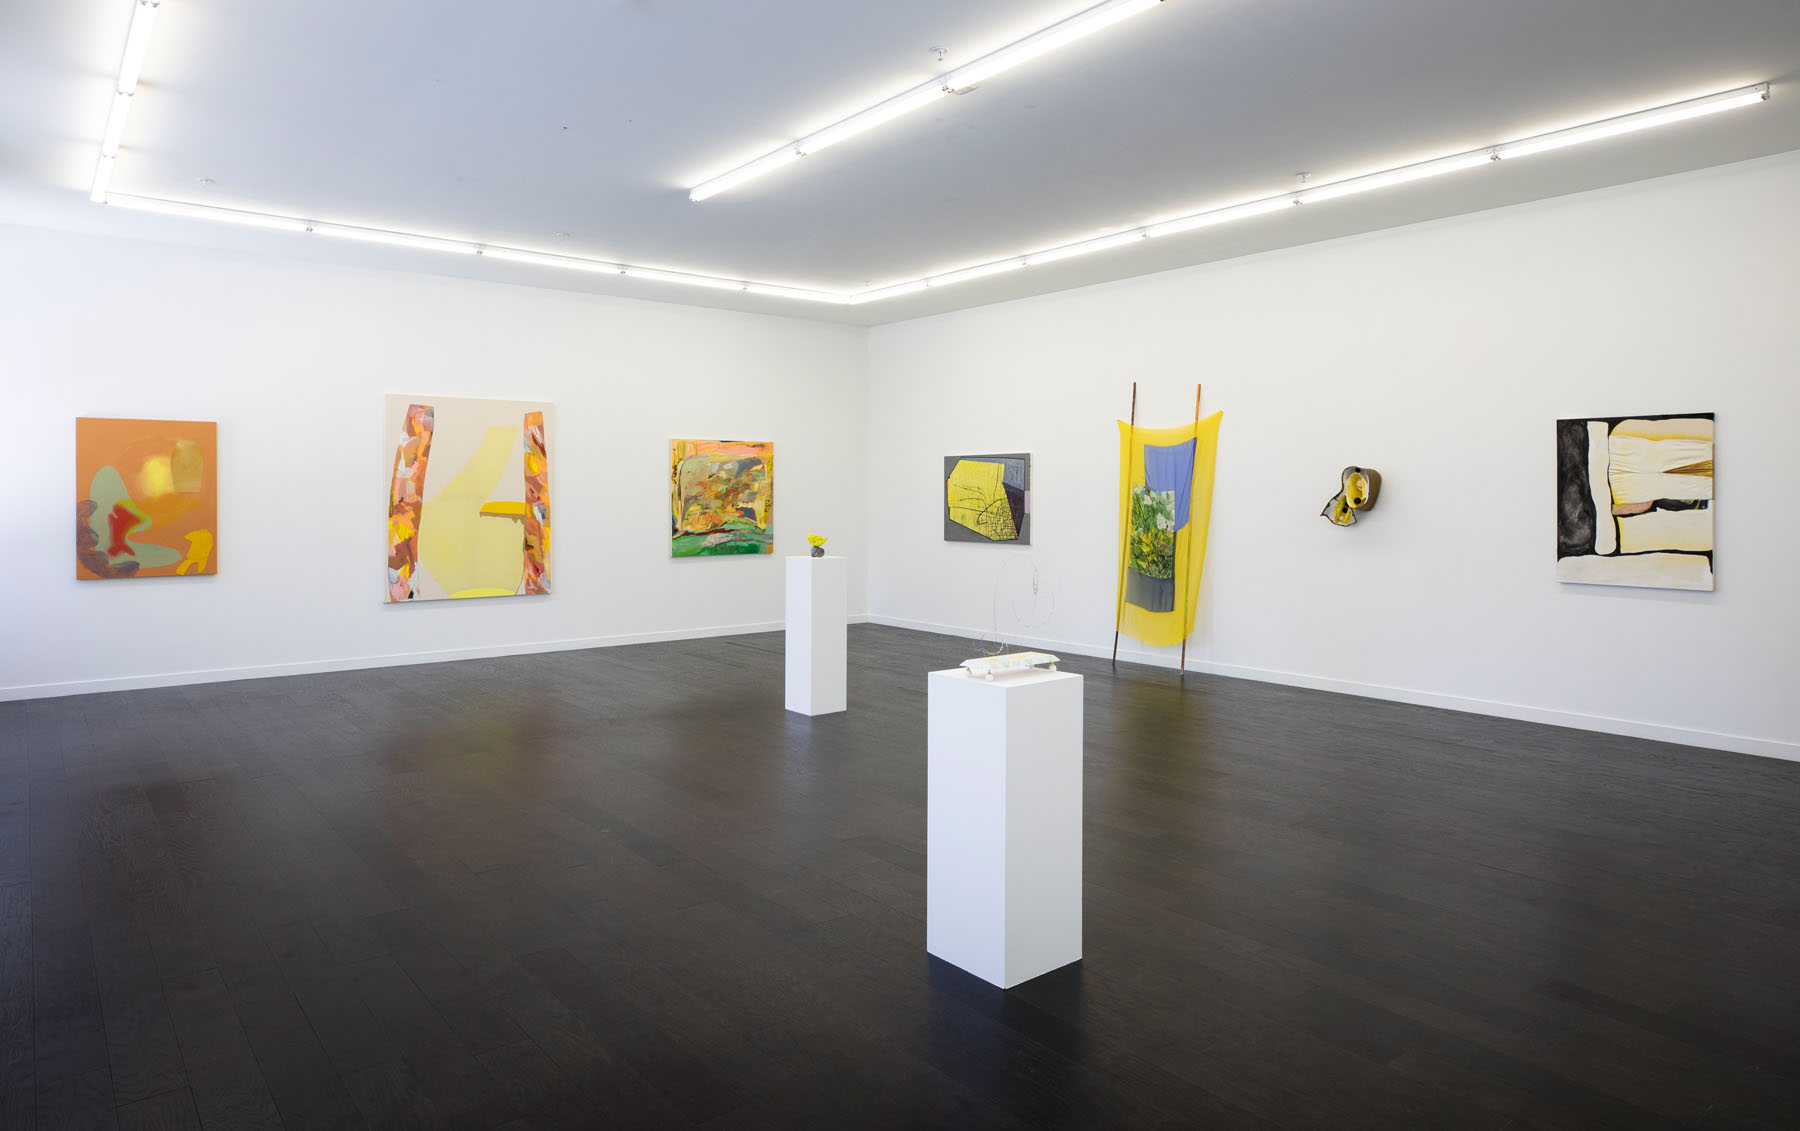 """Yellow"" at September Gallery, Hudson, NY, June 22 - August 4, 2019 Left to right: Odessa Straub, Amanda Valdez, Ashley Garrett, Michelle Segre, Brenda Goodman, Sun You, Lauren Luloff, Kianja Strobert, Annie Bielski"